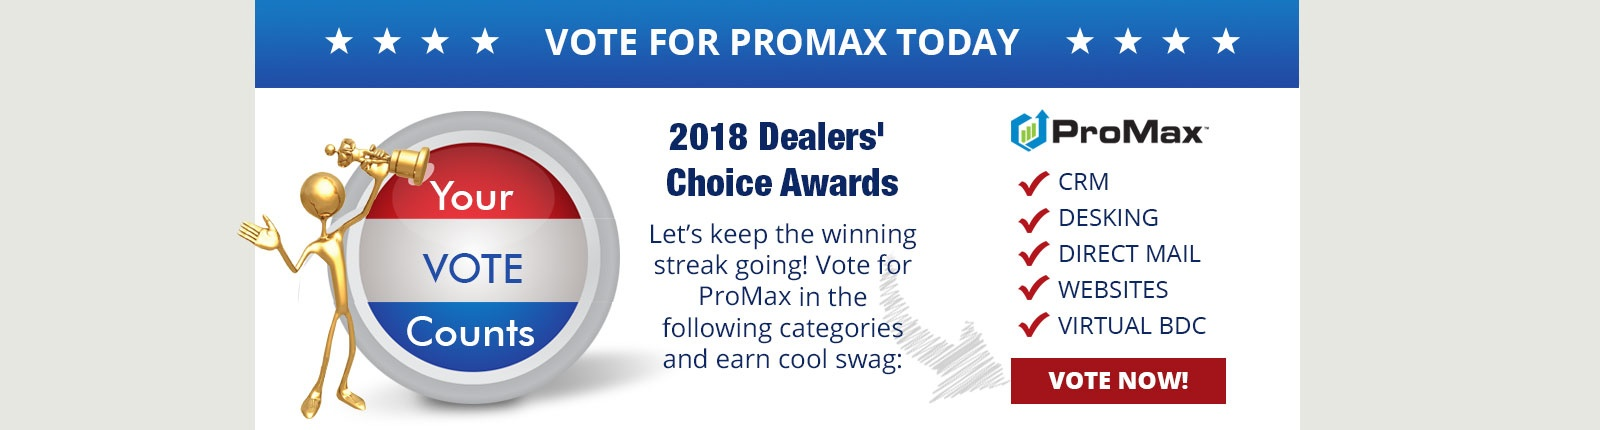 Vote for ProMax